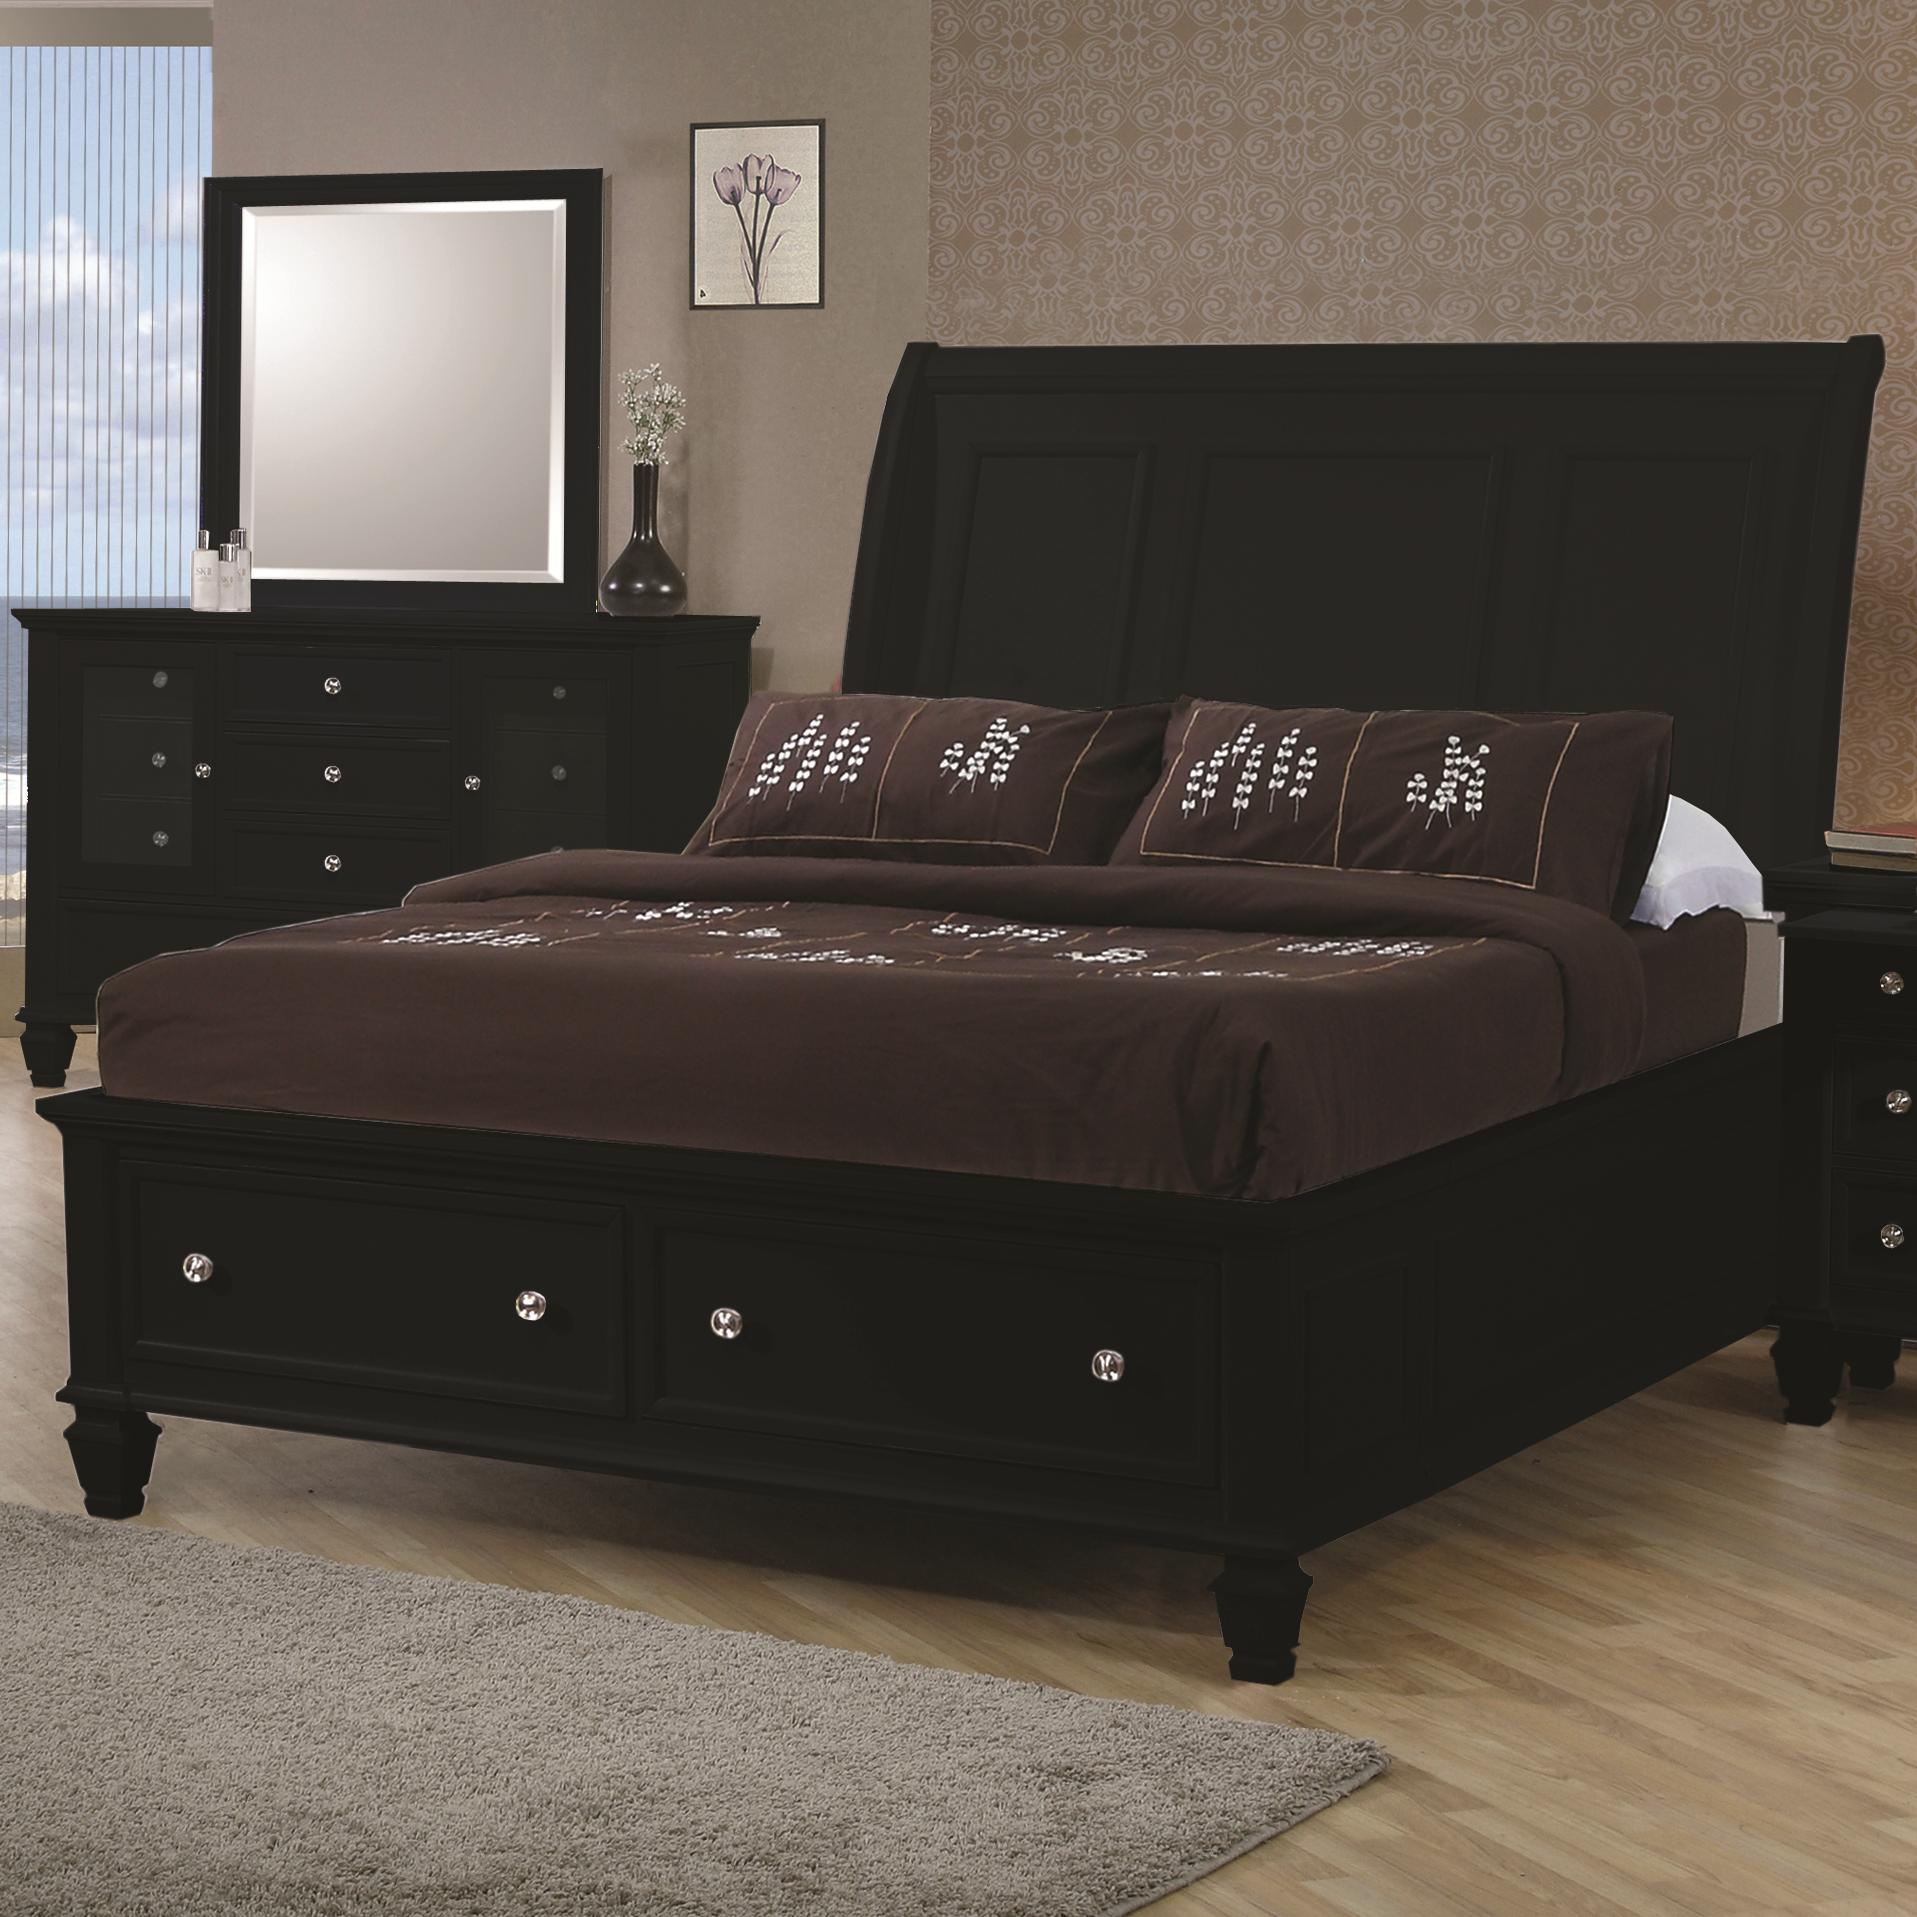 Sandy Beach California King Sleigh Bed by Coaster at Prime Brothers Furniture